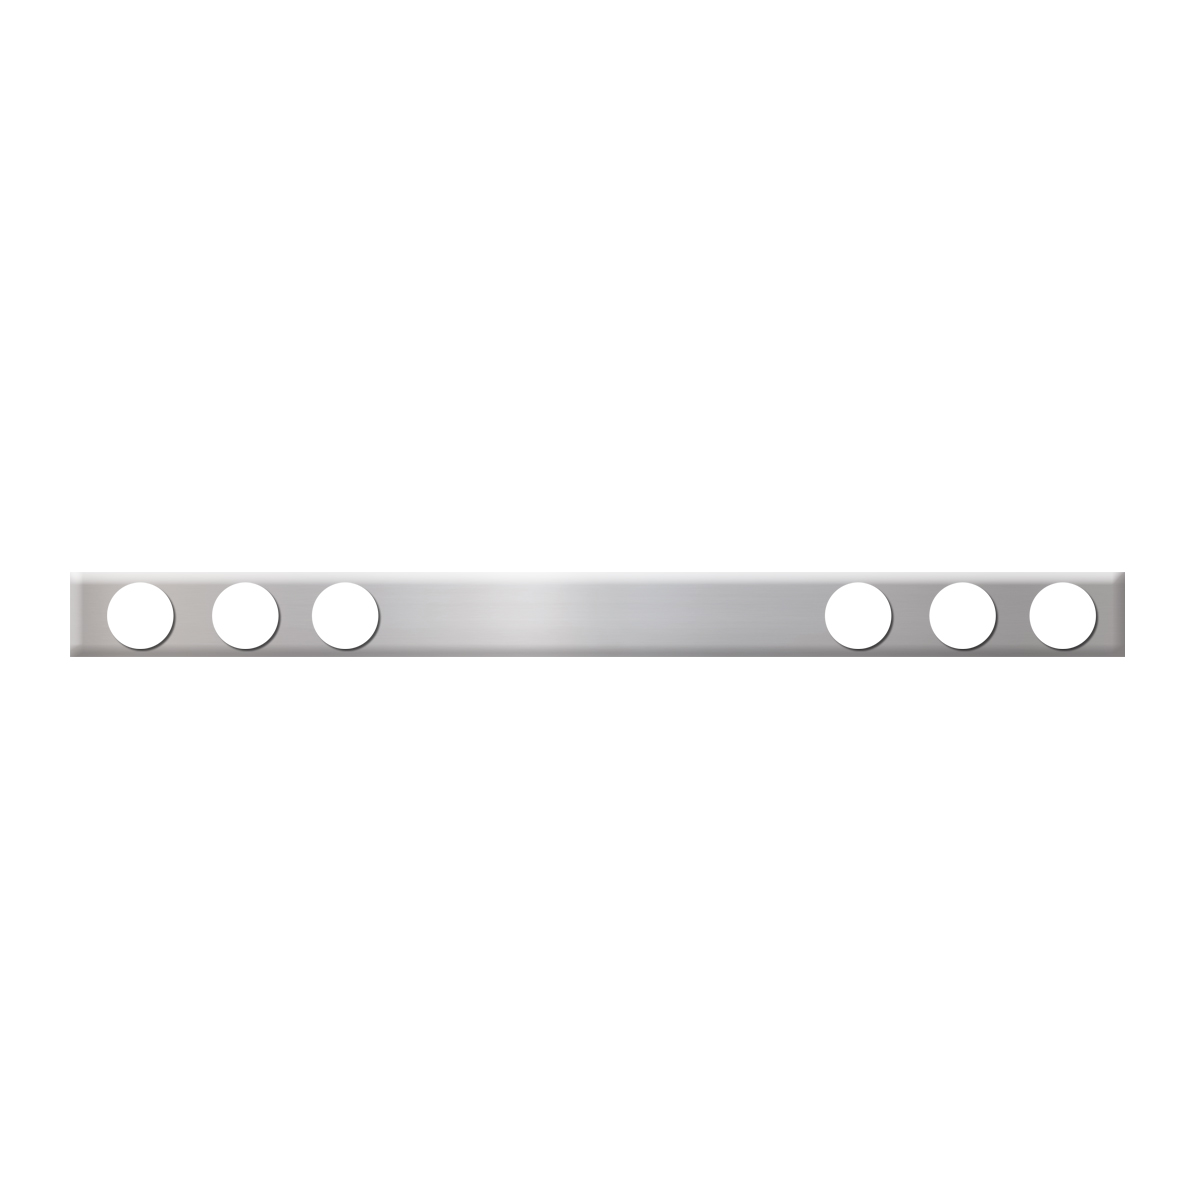 #80121 Chrome Plated Steel One Piece Rear Light Bar Only